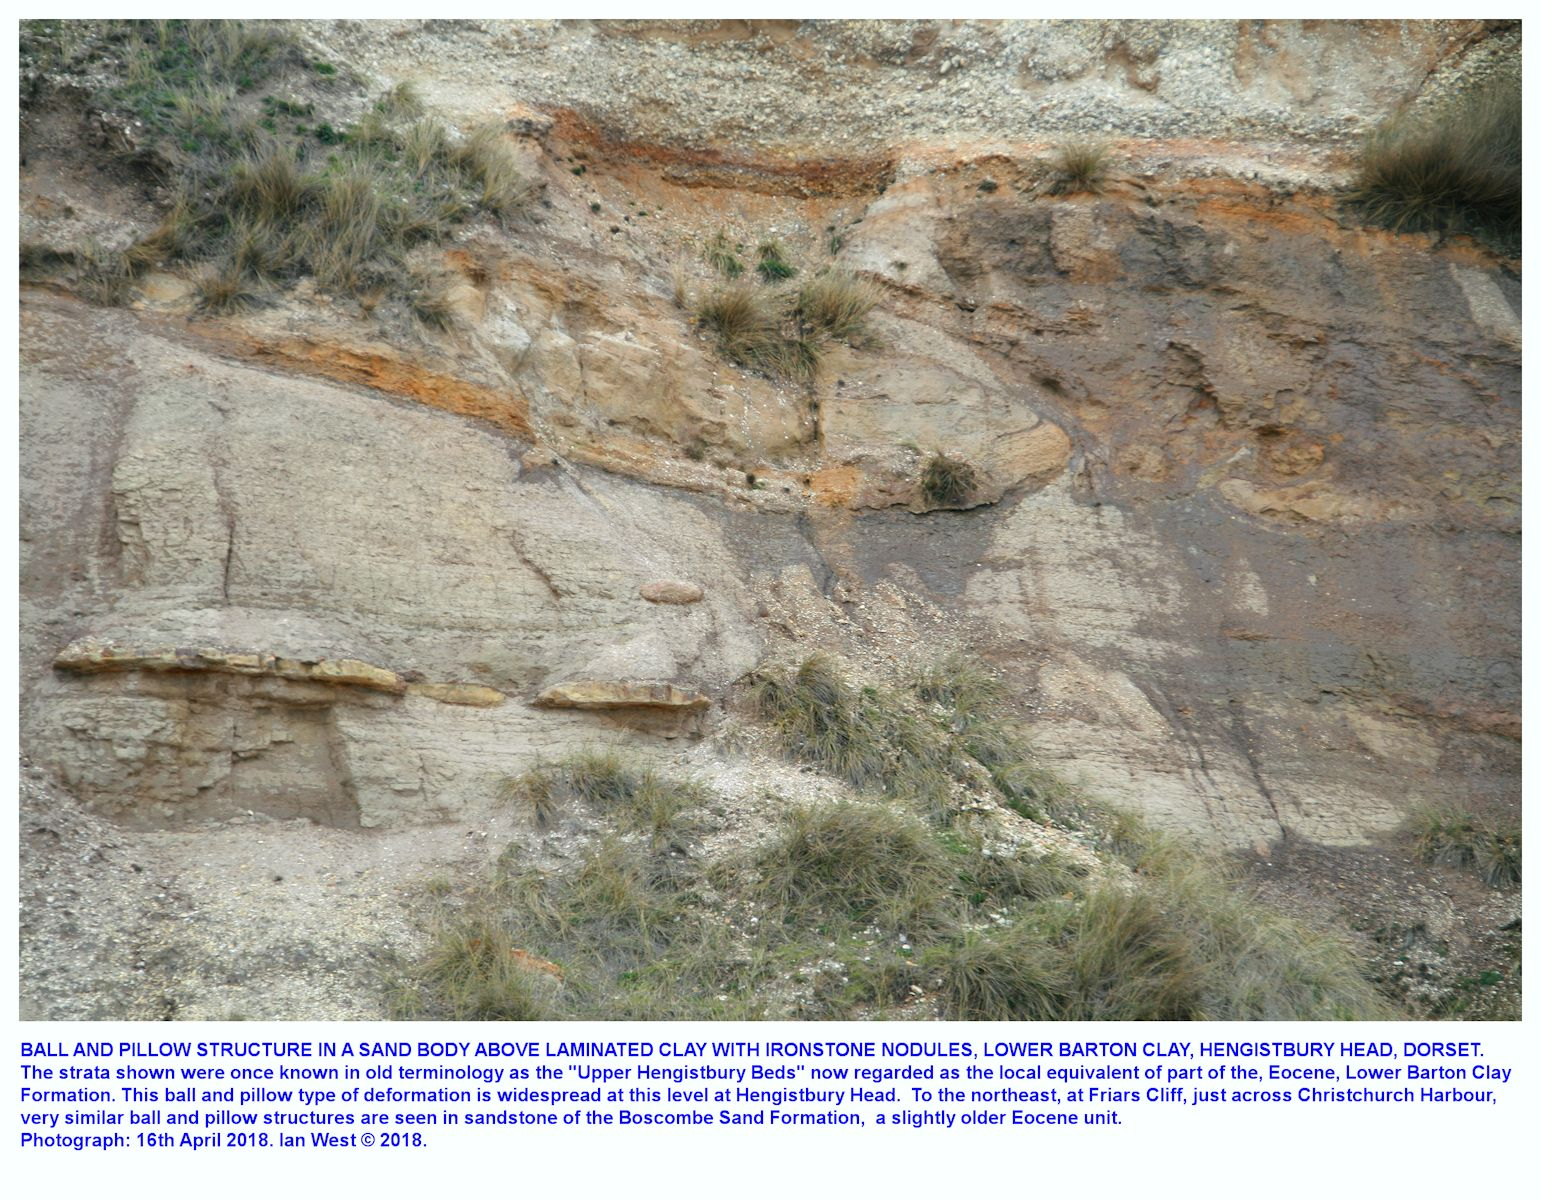 The top two bands,  4 and 5, in the laminated, silty, lower Barton Clay near the south-facing, eastern end of Hengistbury Head, Bournemouth, Dorset, and also showing an overlying sand body with ball and pillow type of liquifaction features, upper part of cliff only, April 2018